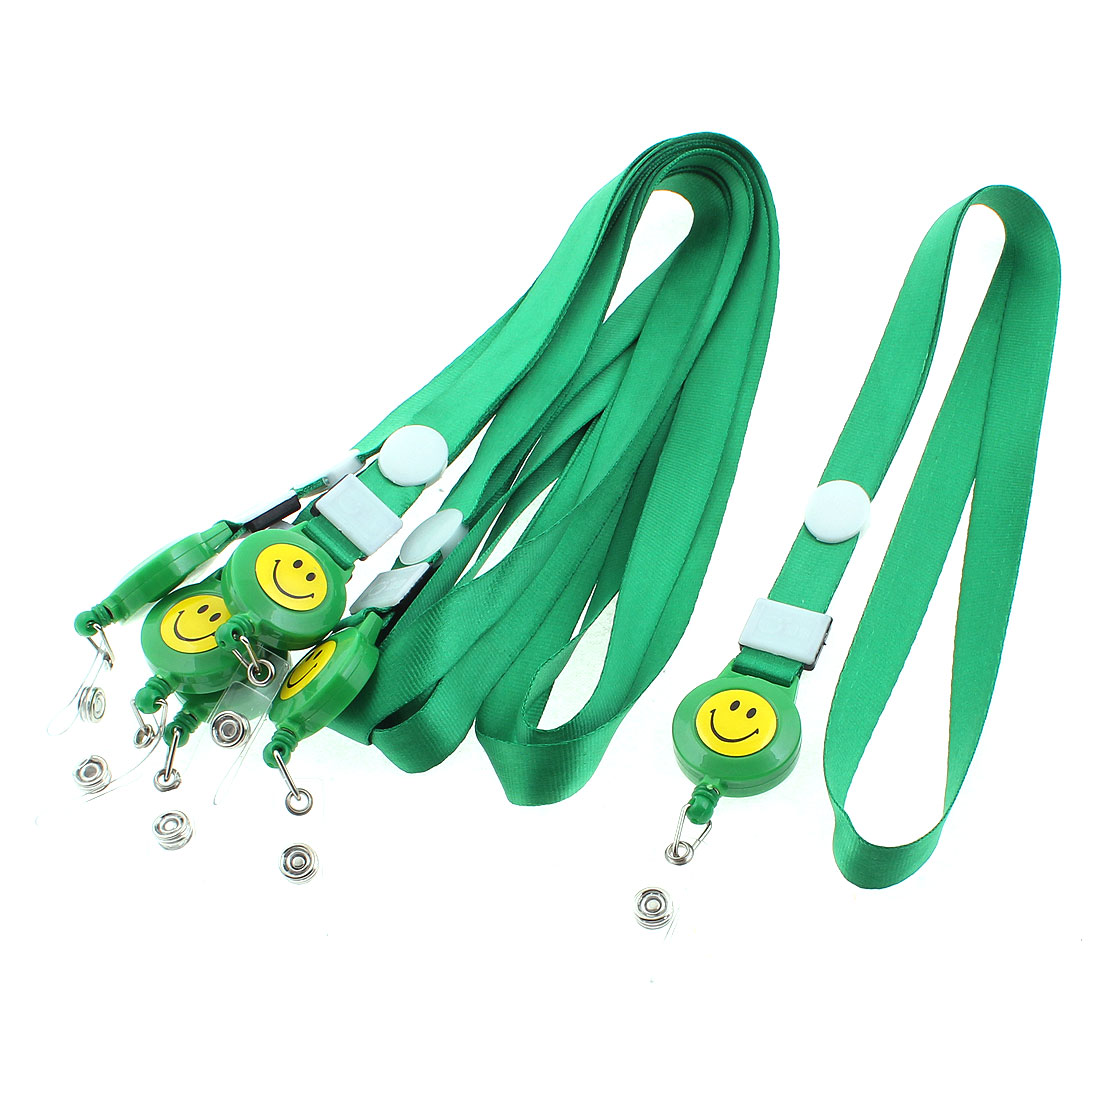 Work Name ID Card Badge Holder Lanyard Smile Face Pattern Strap Green 6PCS